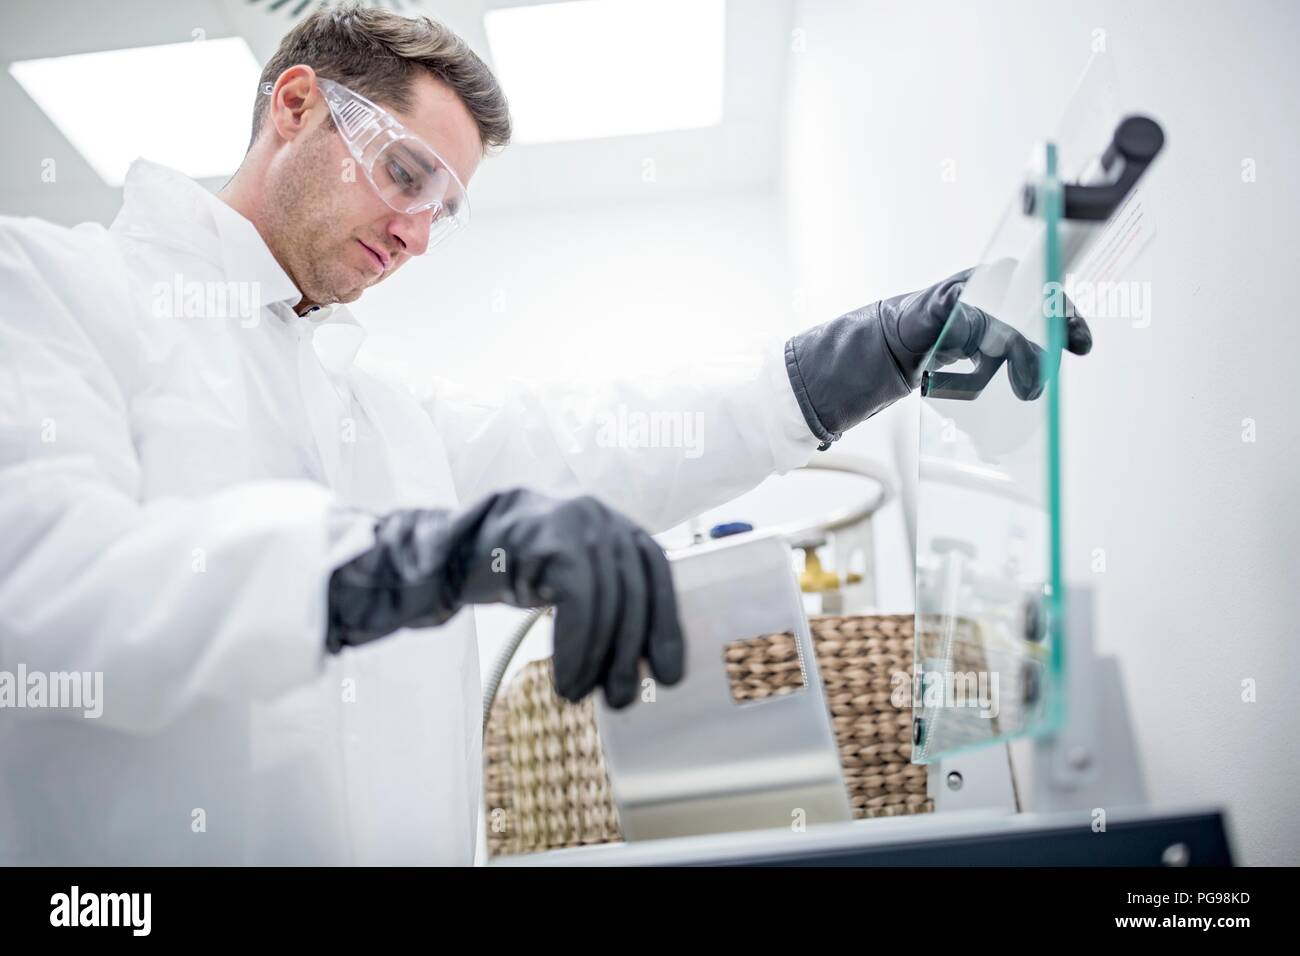 Technician storing stem cell samples in cryostorage. They have been frozen in liquid nitrogen to preserve them. Stem cells are a potential source of cells to repair damaged tissue in diseases such as Parkinson's and insulin-dependent diabetes. Stock Photo